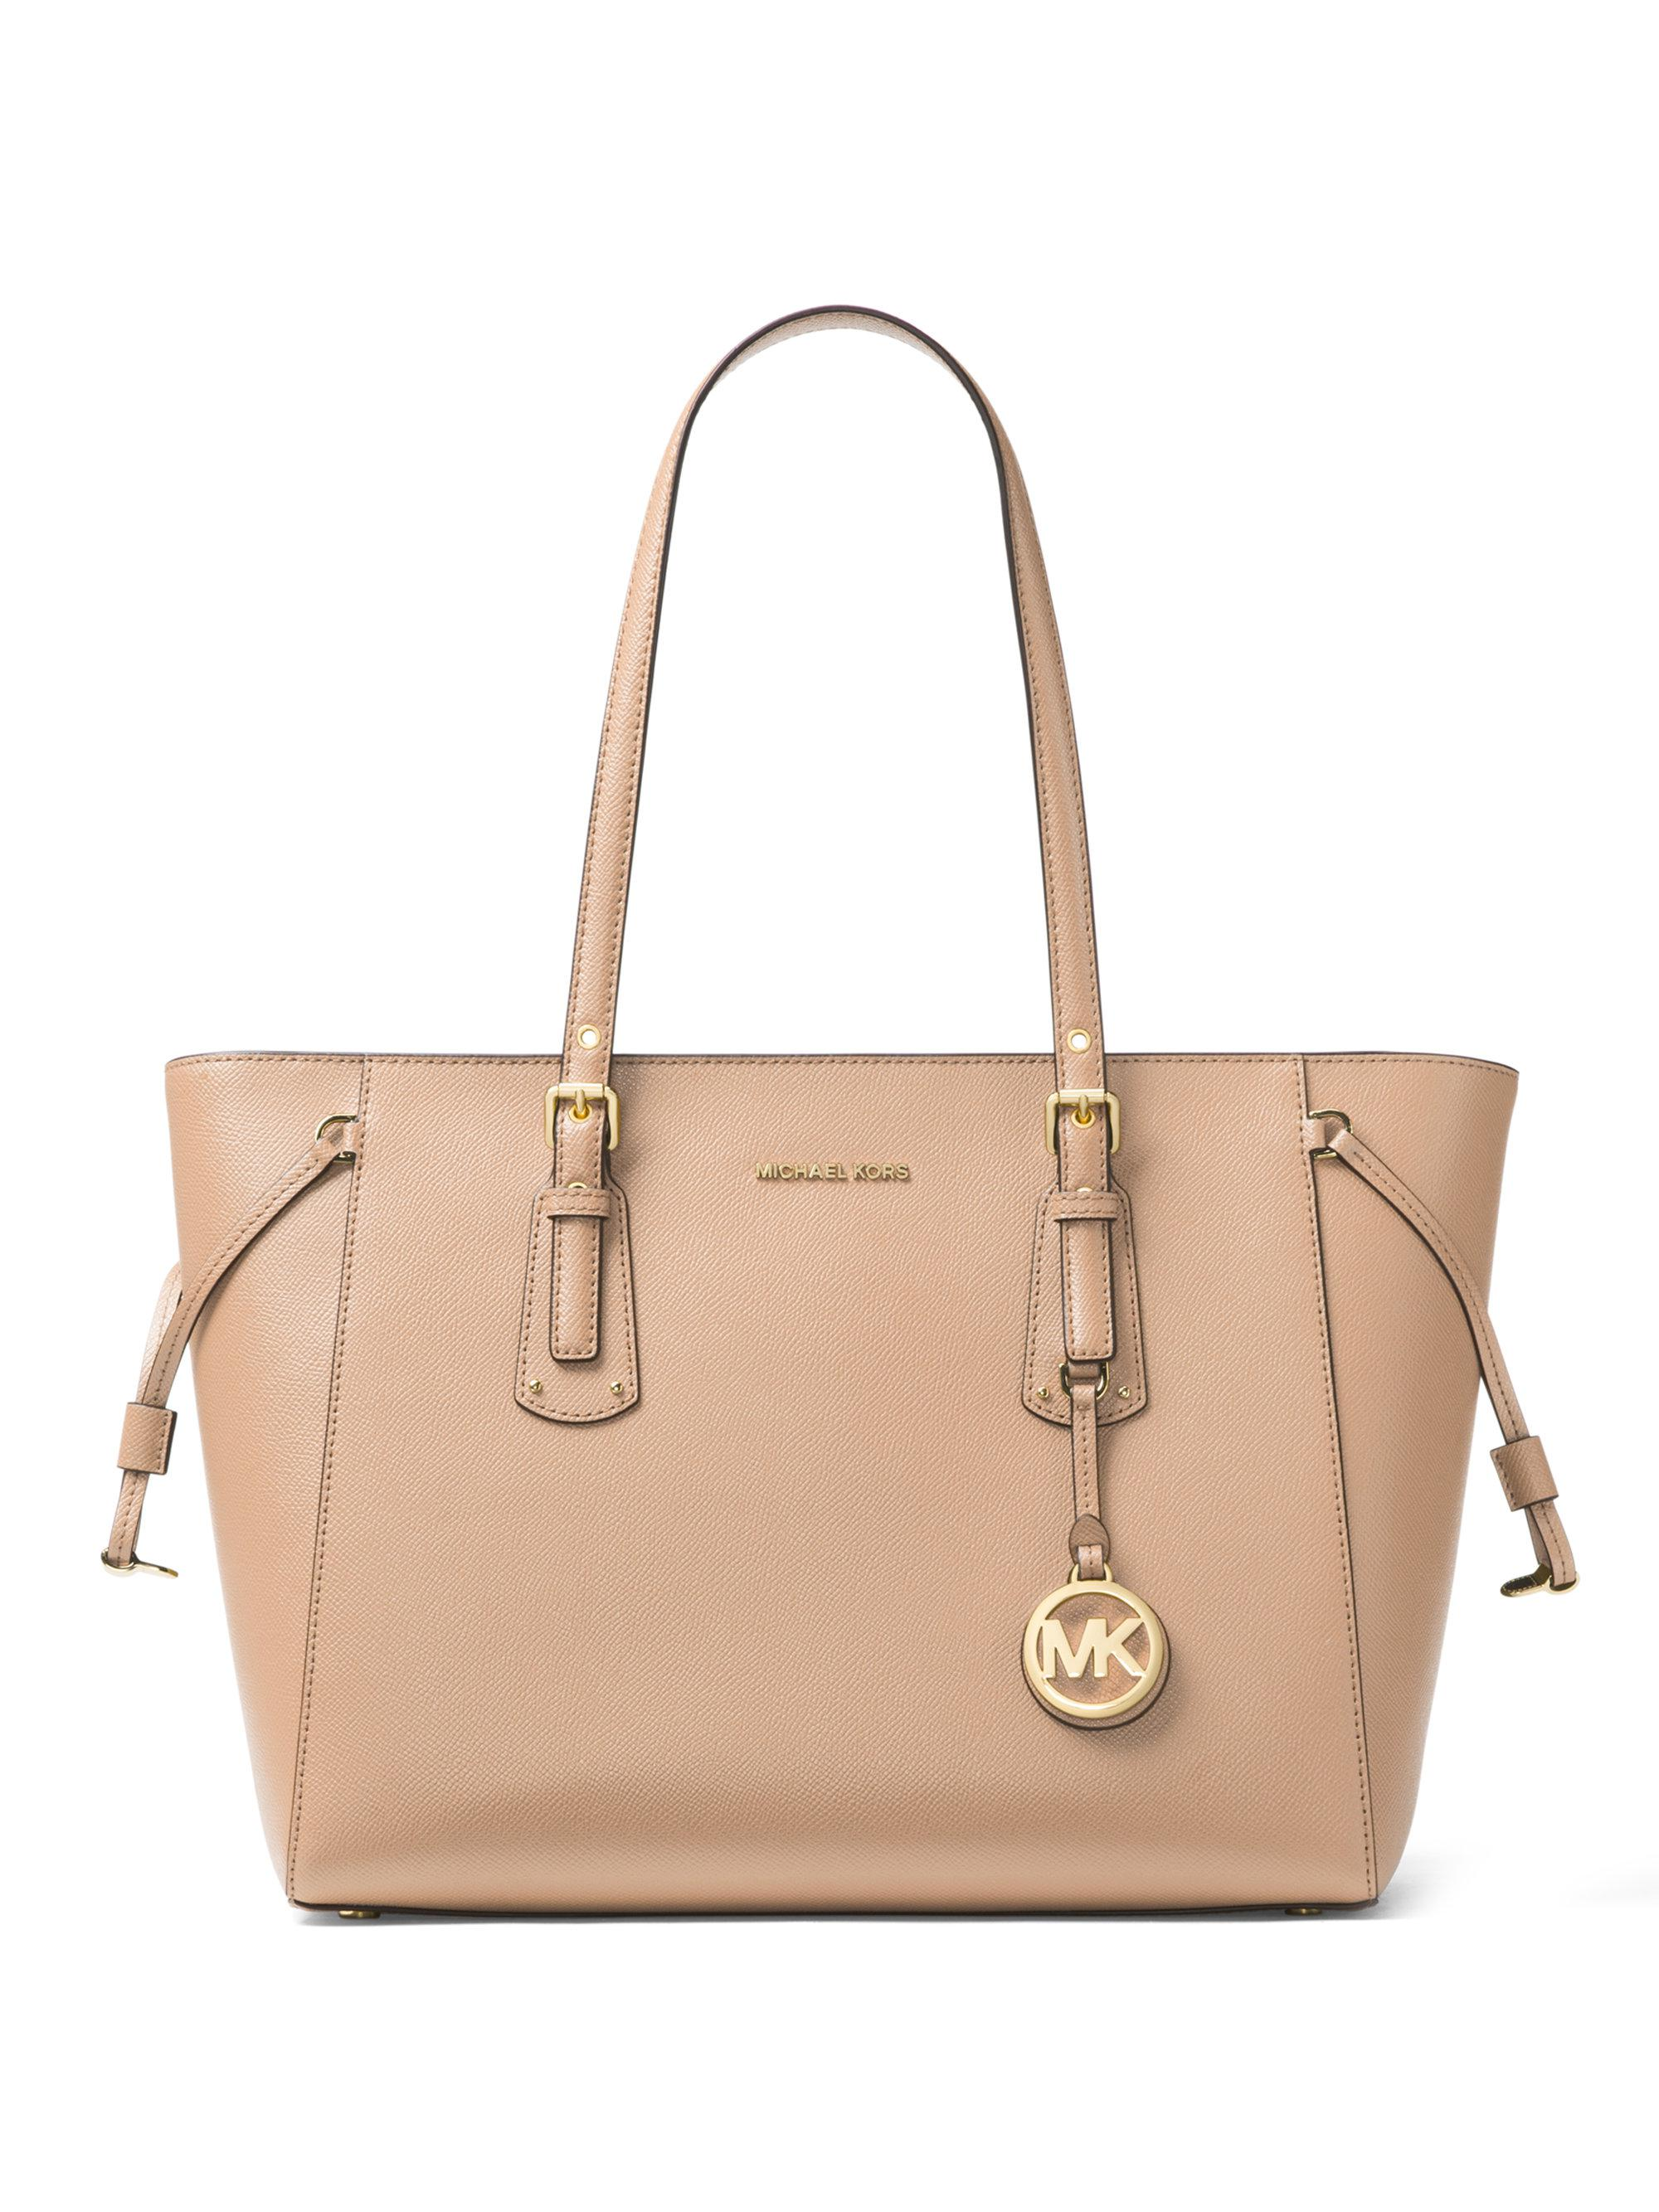 Voyager Medium Top Zip Tote Bag in Brown Monogrammed Canvas with Pink Flowers Michael Michael Kors 7MrDmyl